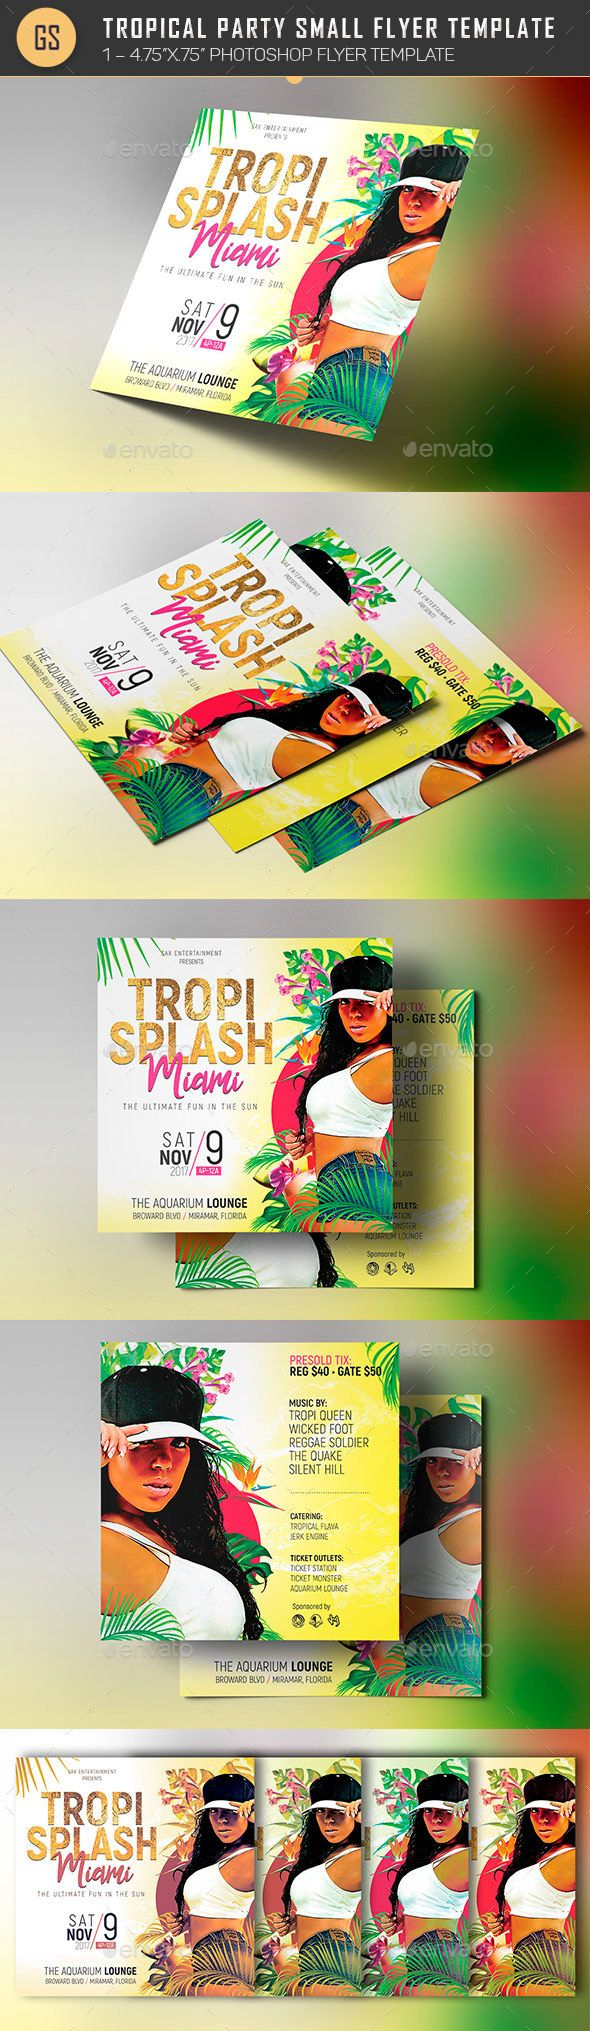 tropical party small flyer template tropical party flyer template